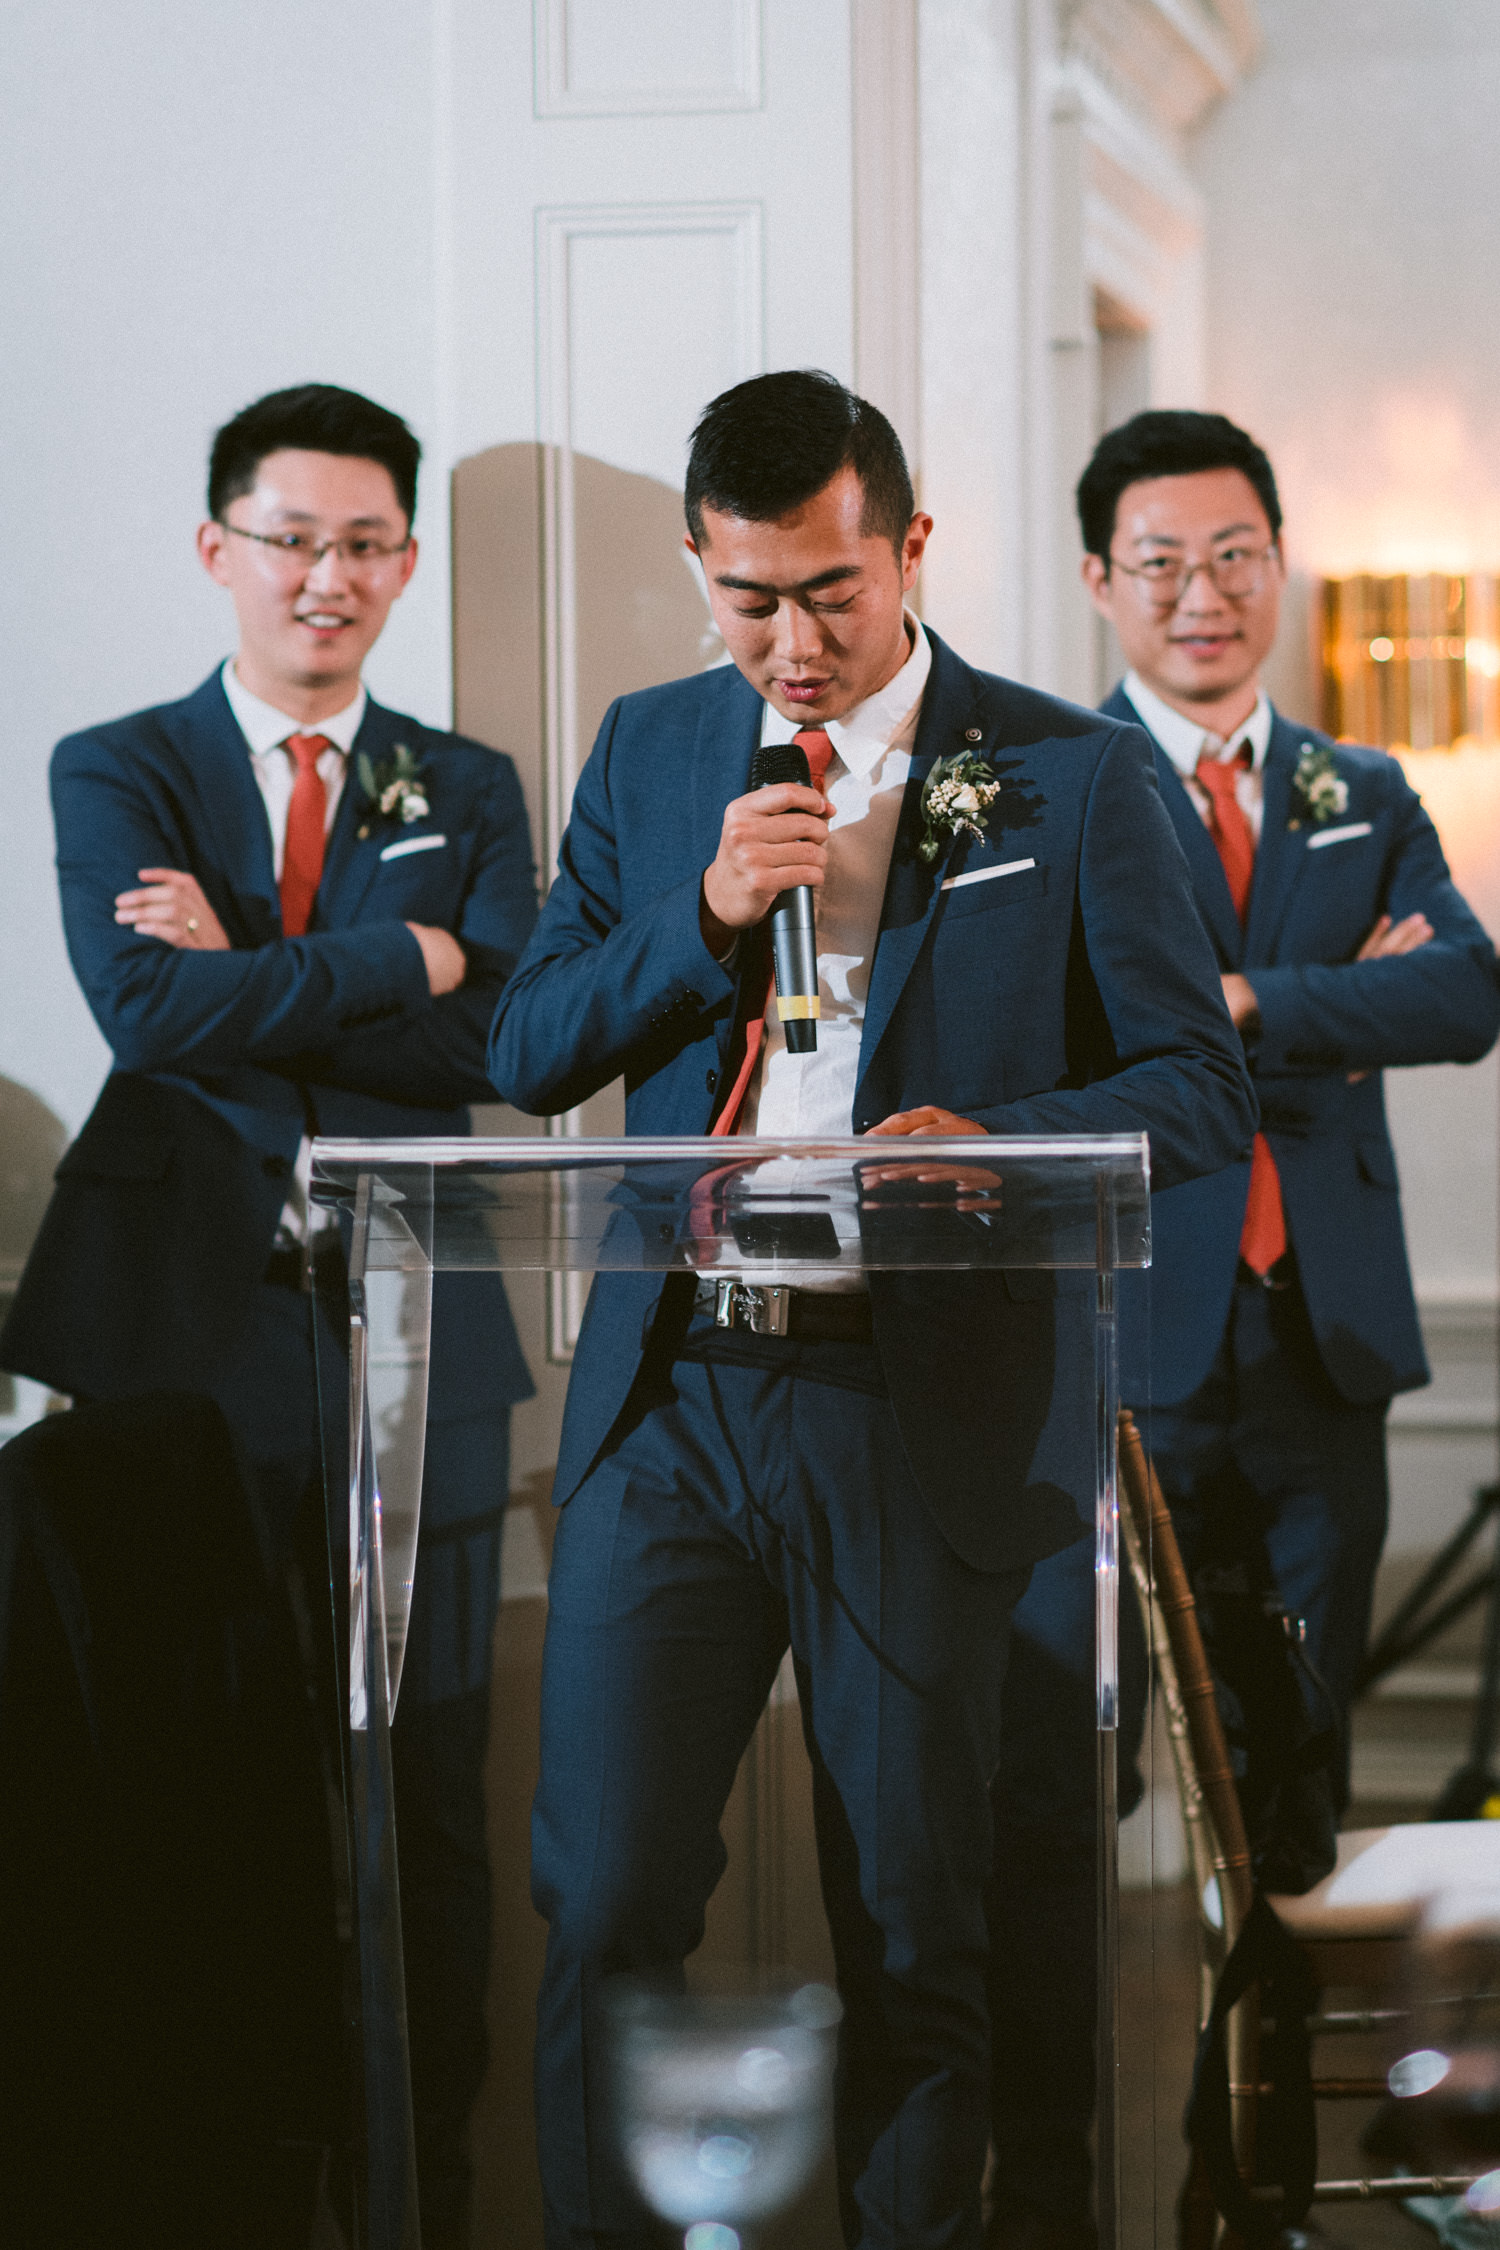 Groomsmen Speech at The Graydon Hall wedding reception